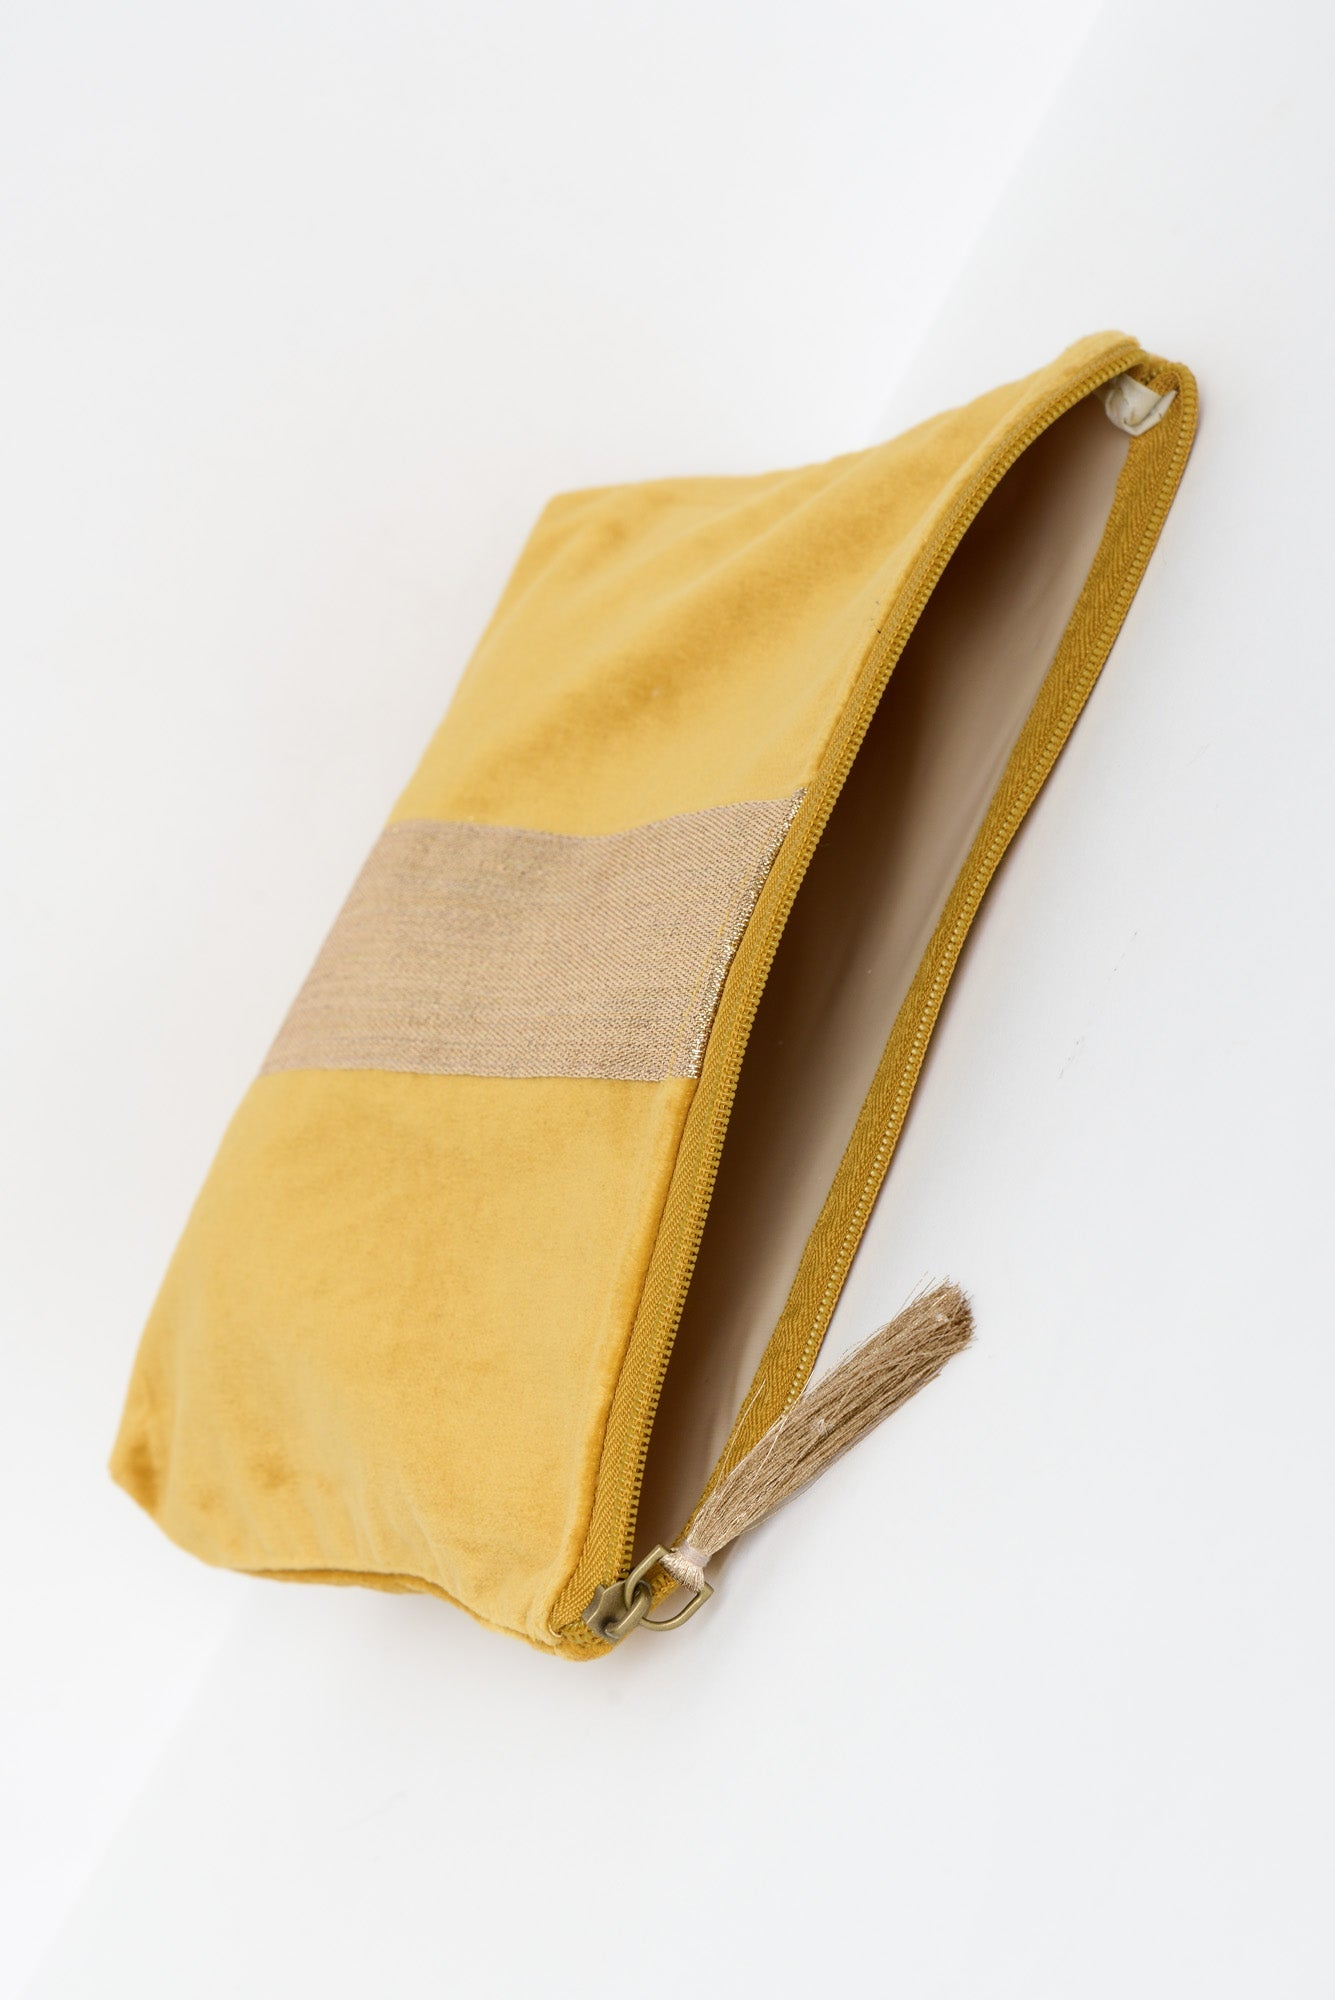 Mustard Velvet Gold Cosmetic Bag - Blue Bungalow